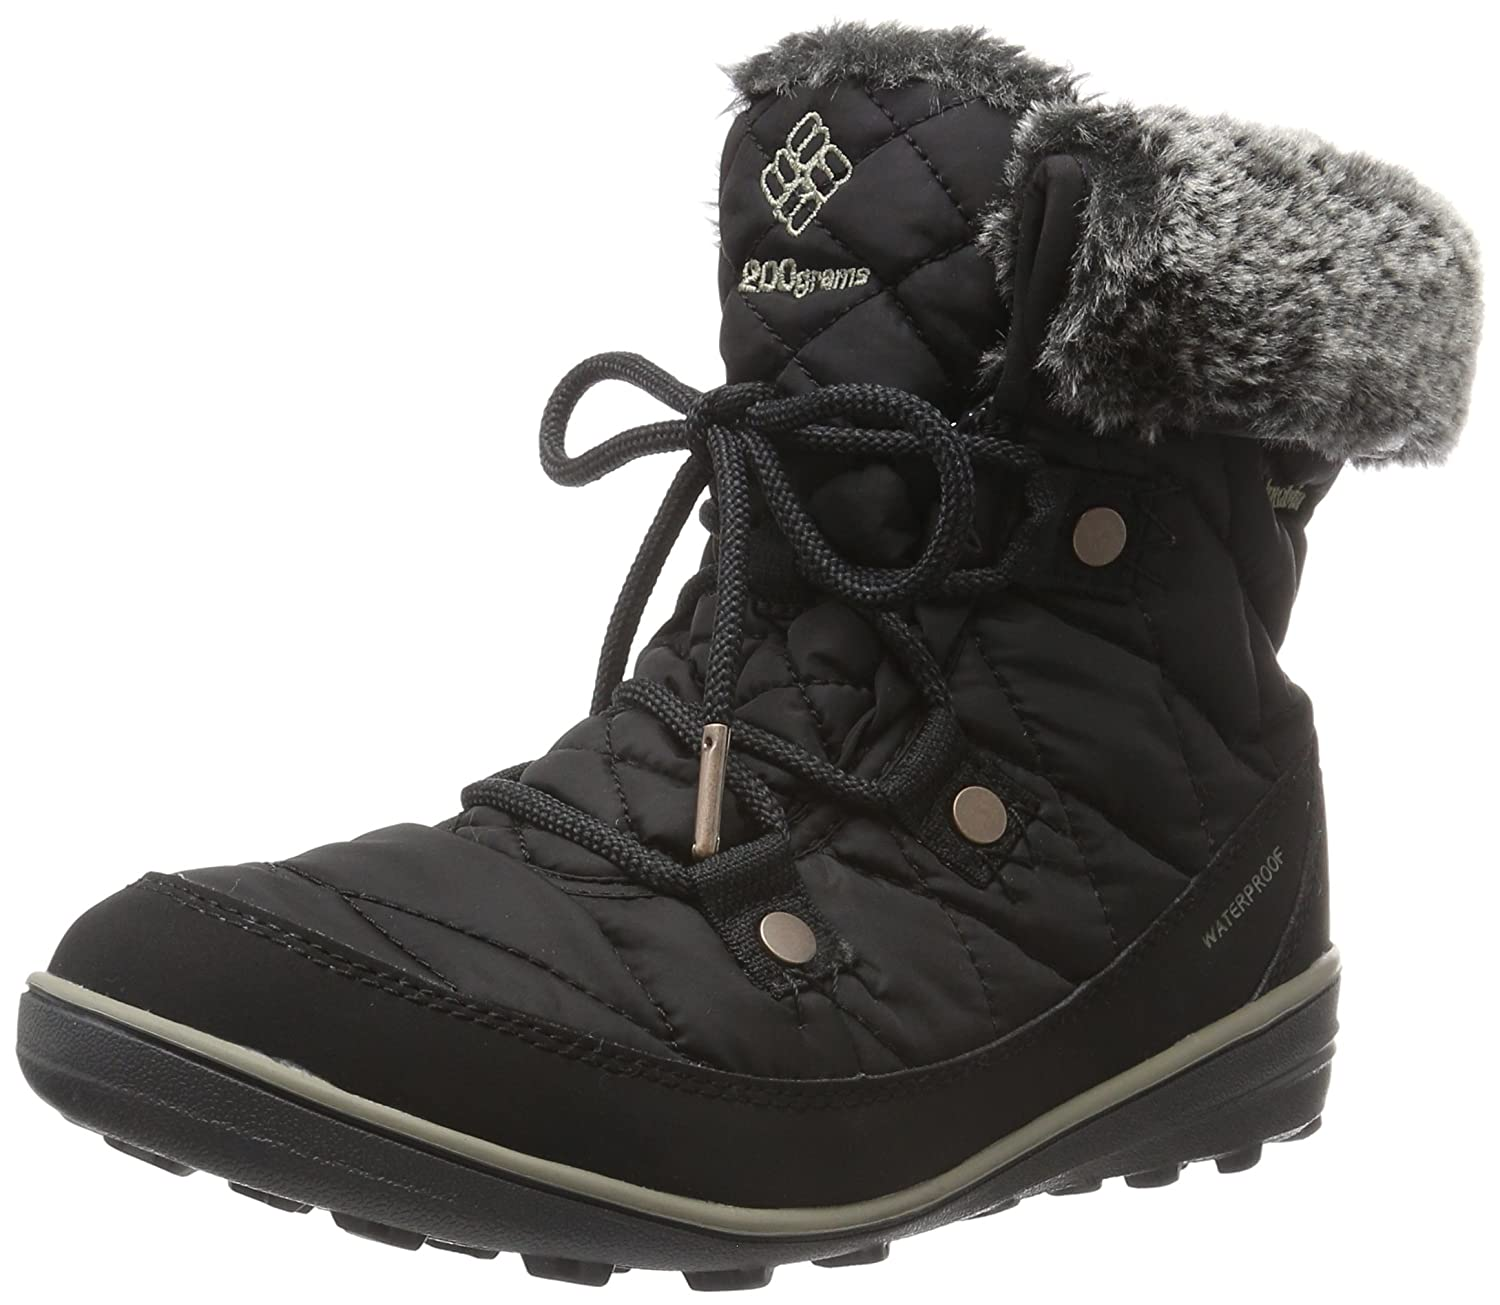 Columbia Women's Heavenly Shorty Omni-Heat Boot B0183M4SGS 8 B(M) US|Black/Kettle